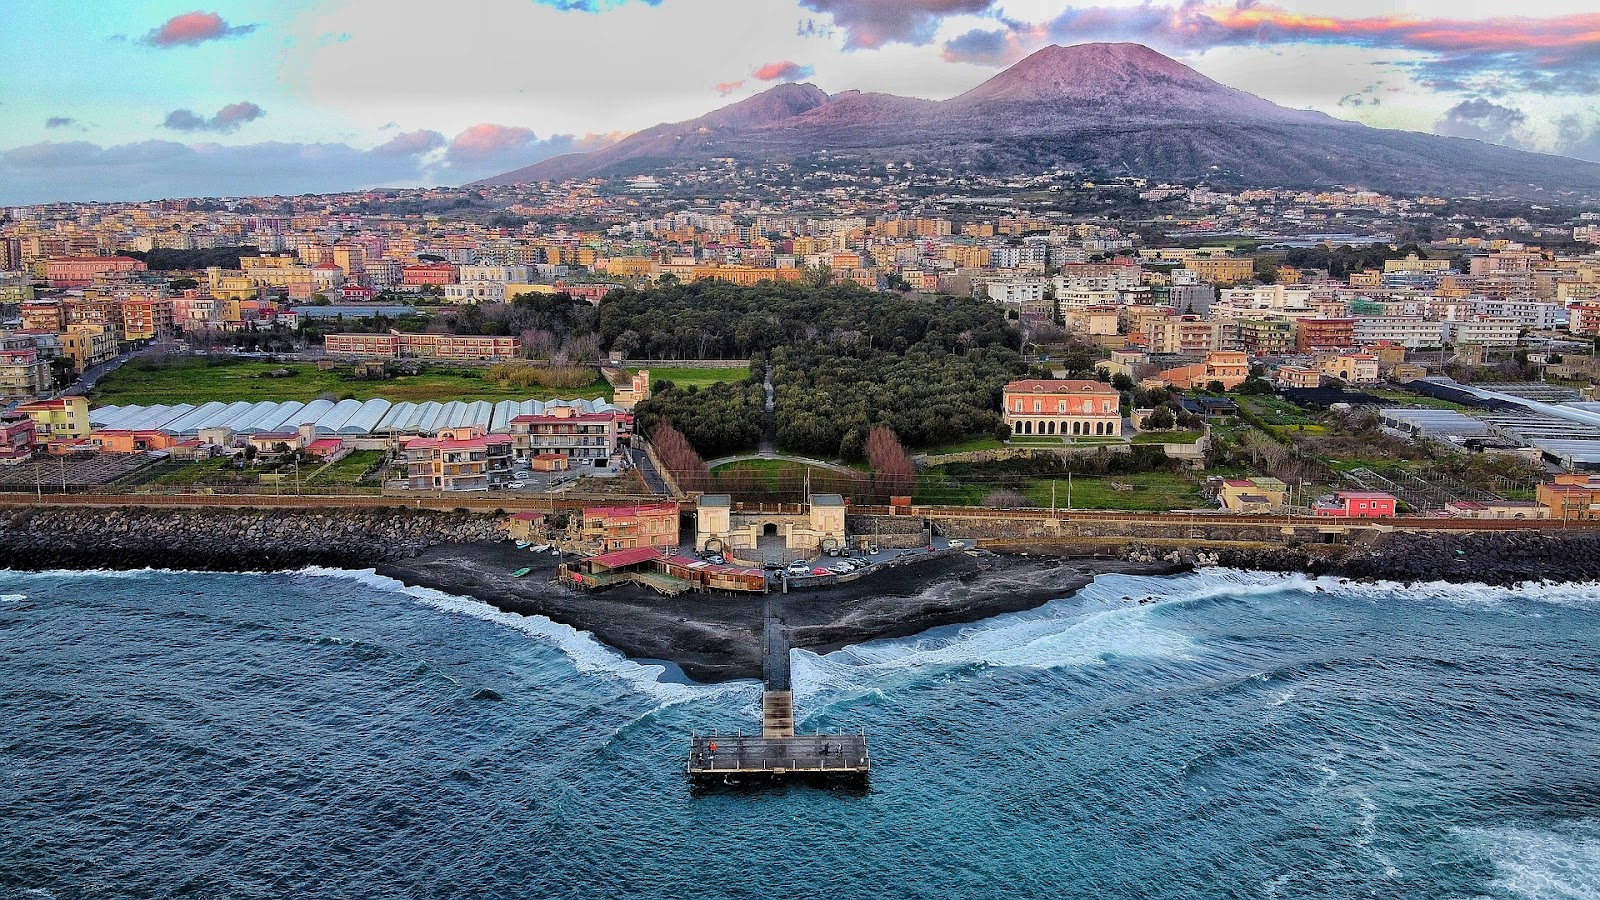 naples dramatic coast small pier sunset skyline traditional buildings mount vesuvius in background italy. Naples is a must-visit city on a Southern Italy road trip.